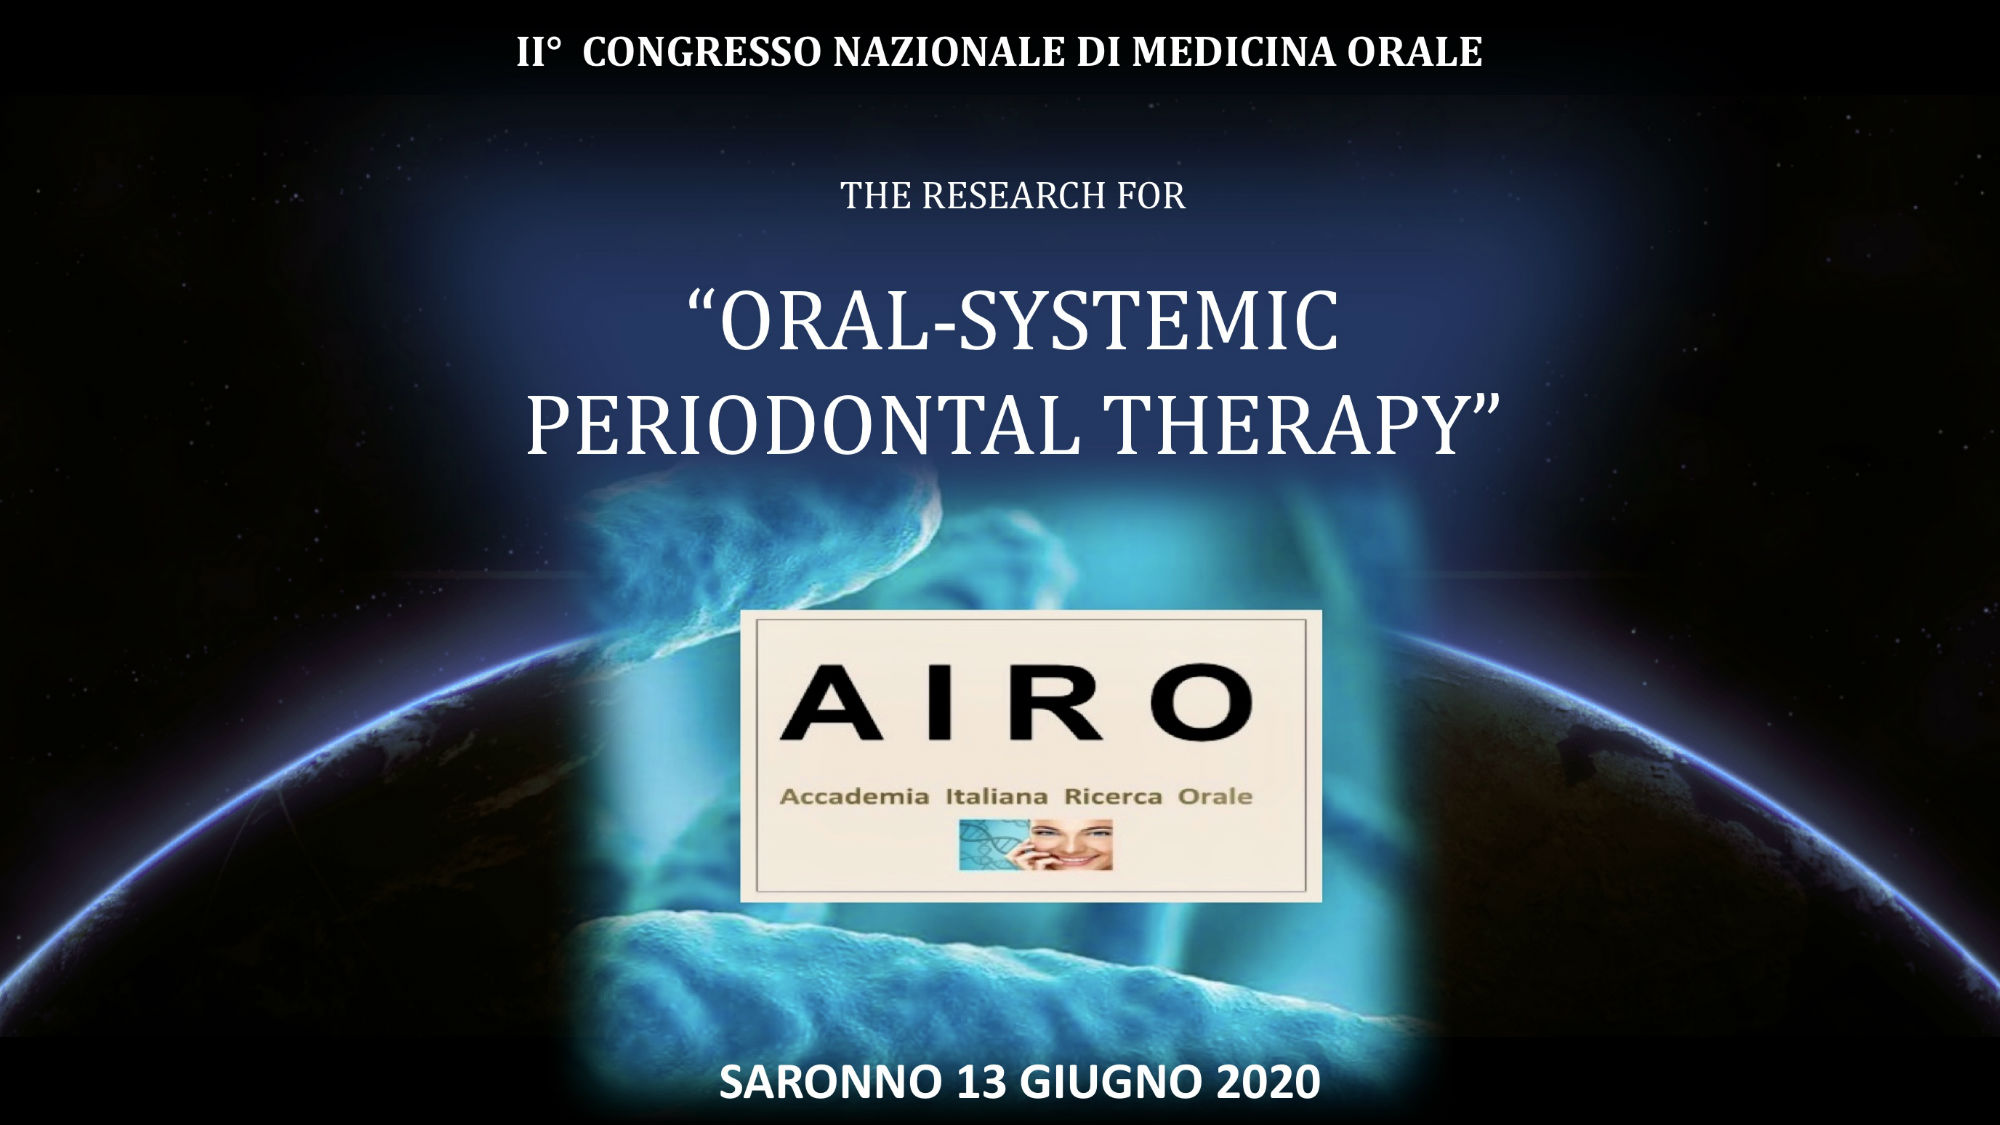 Oral-systemic periodontal therapy